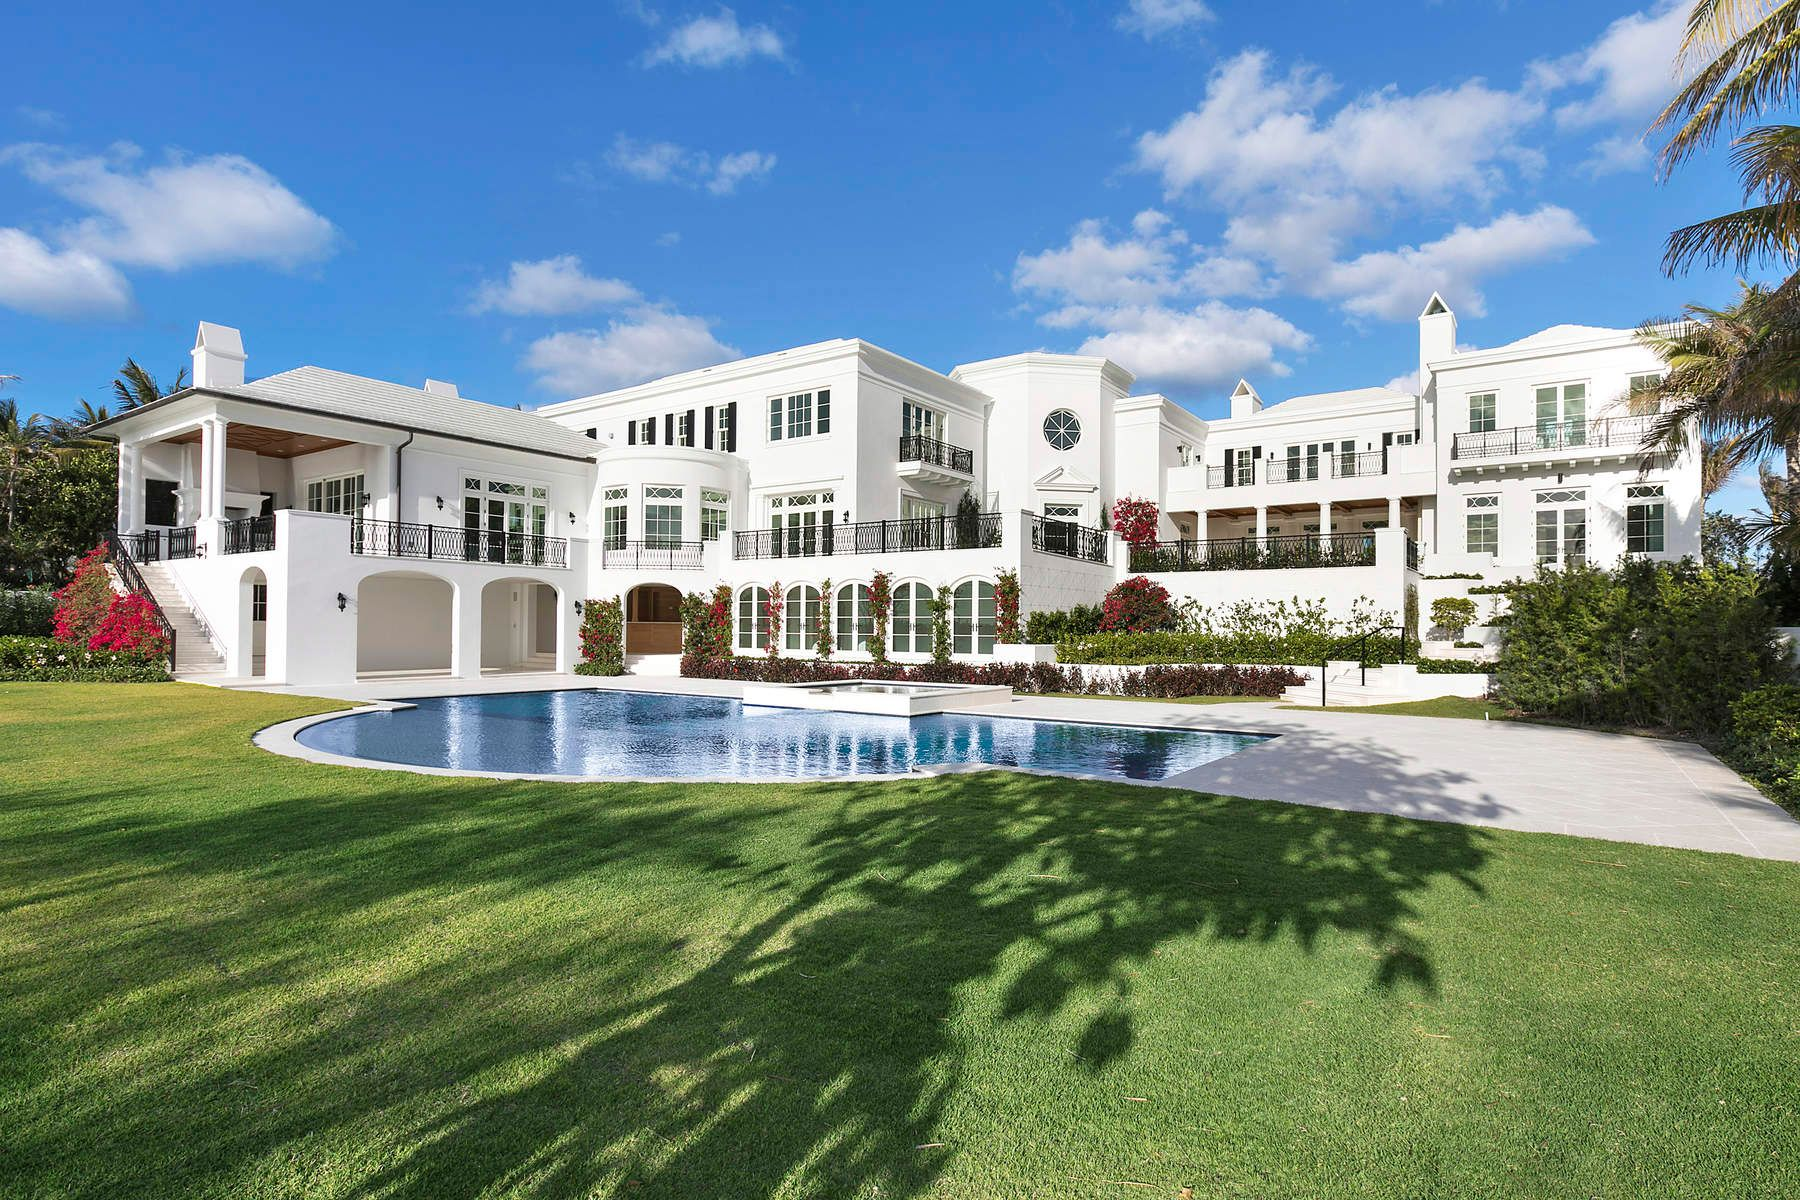 Casa Unifamiliar por un Venta en Ocean To Intracoastal Estate Palm Beach, Florida 33480 Estados Unidos